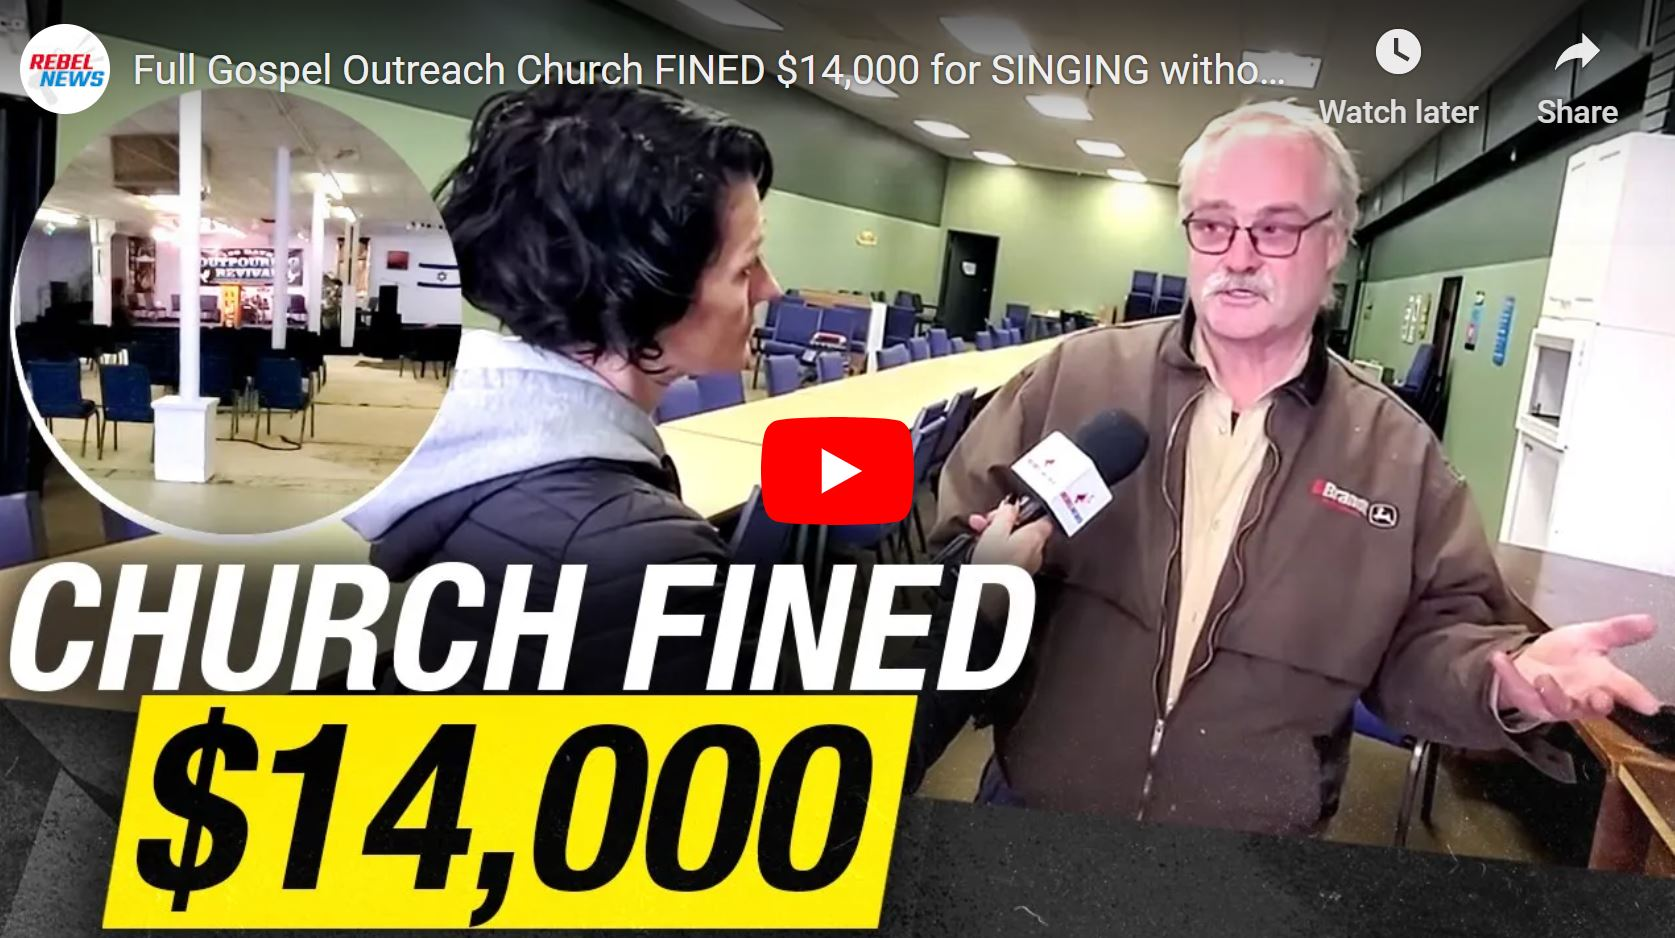 Full Gospel Outreach Church FINED $14,000 for SINGING without masks in Saskatchewan